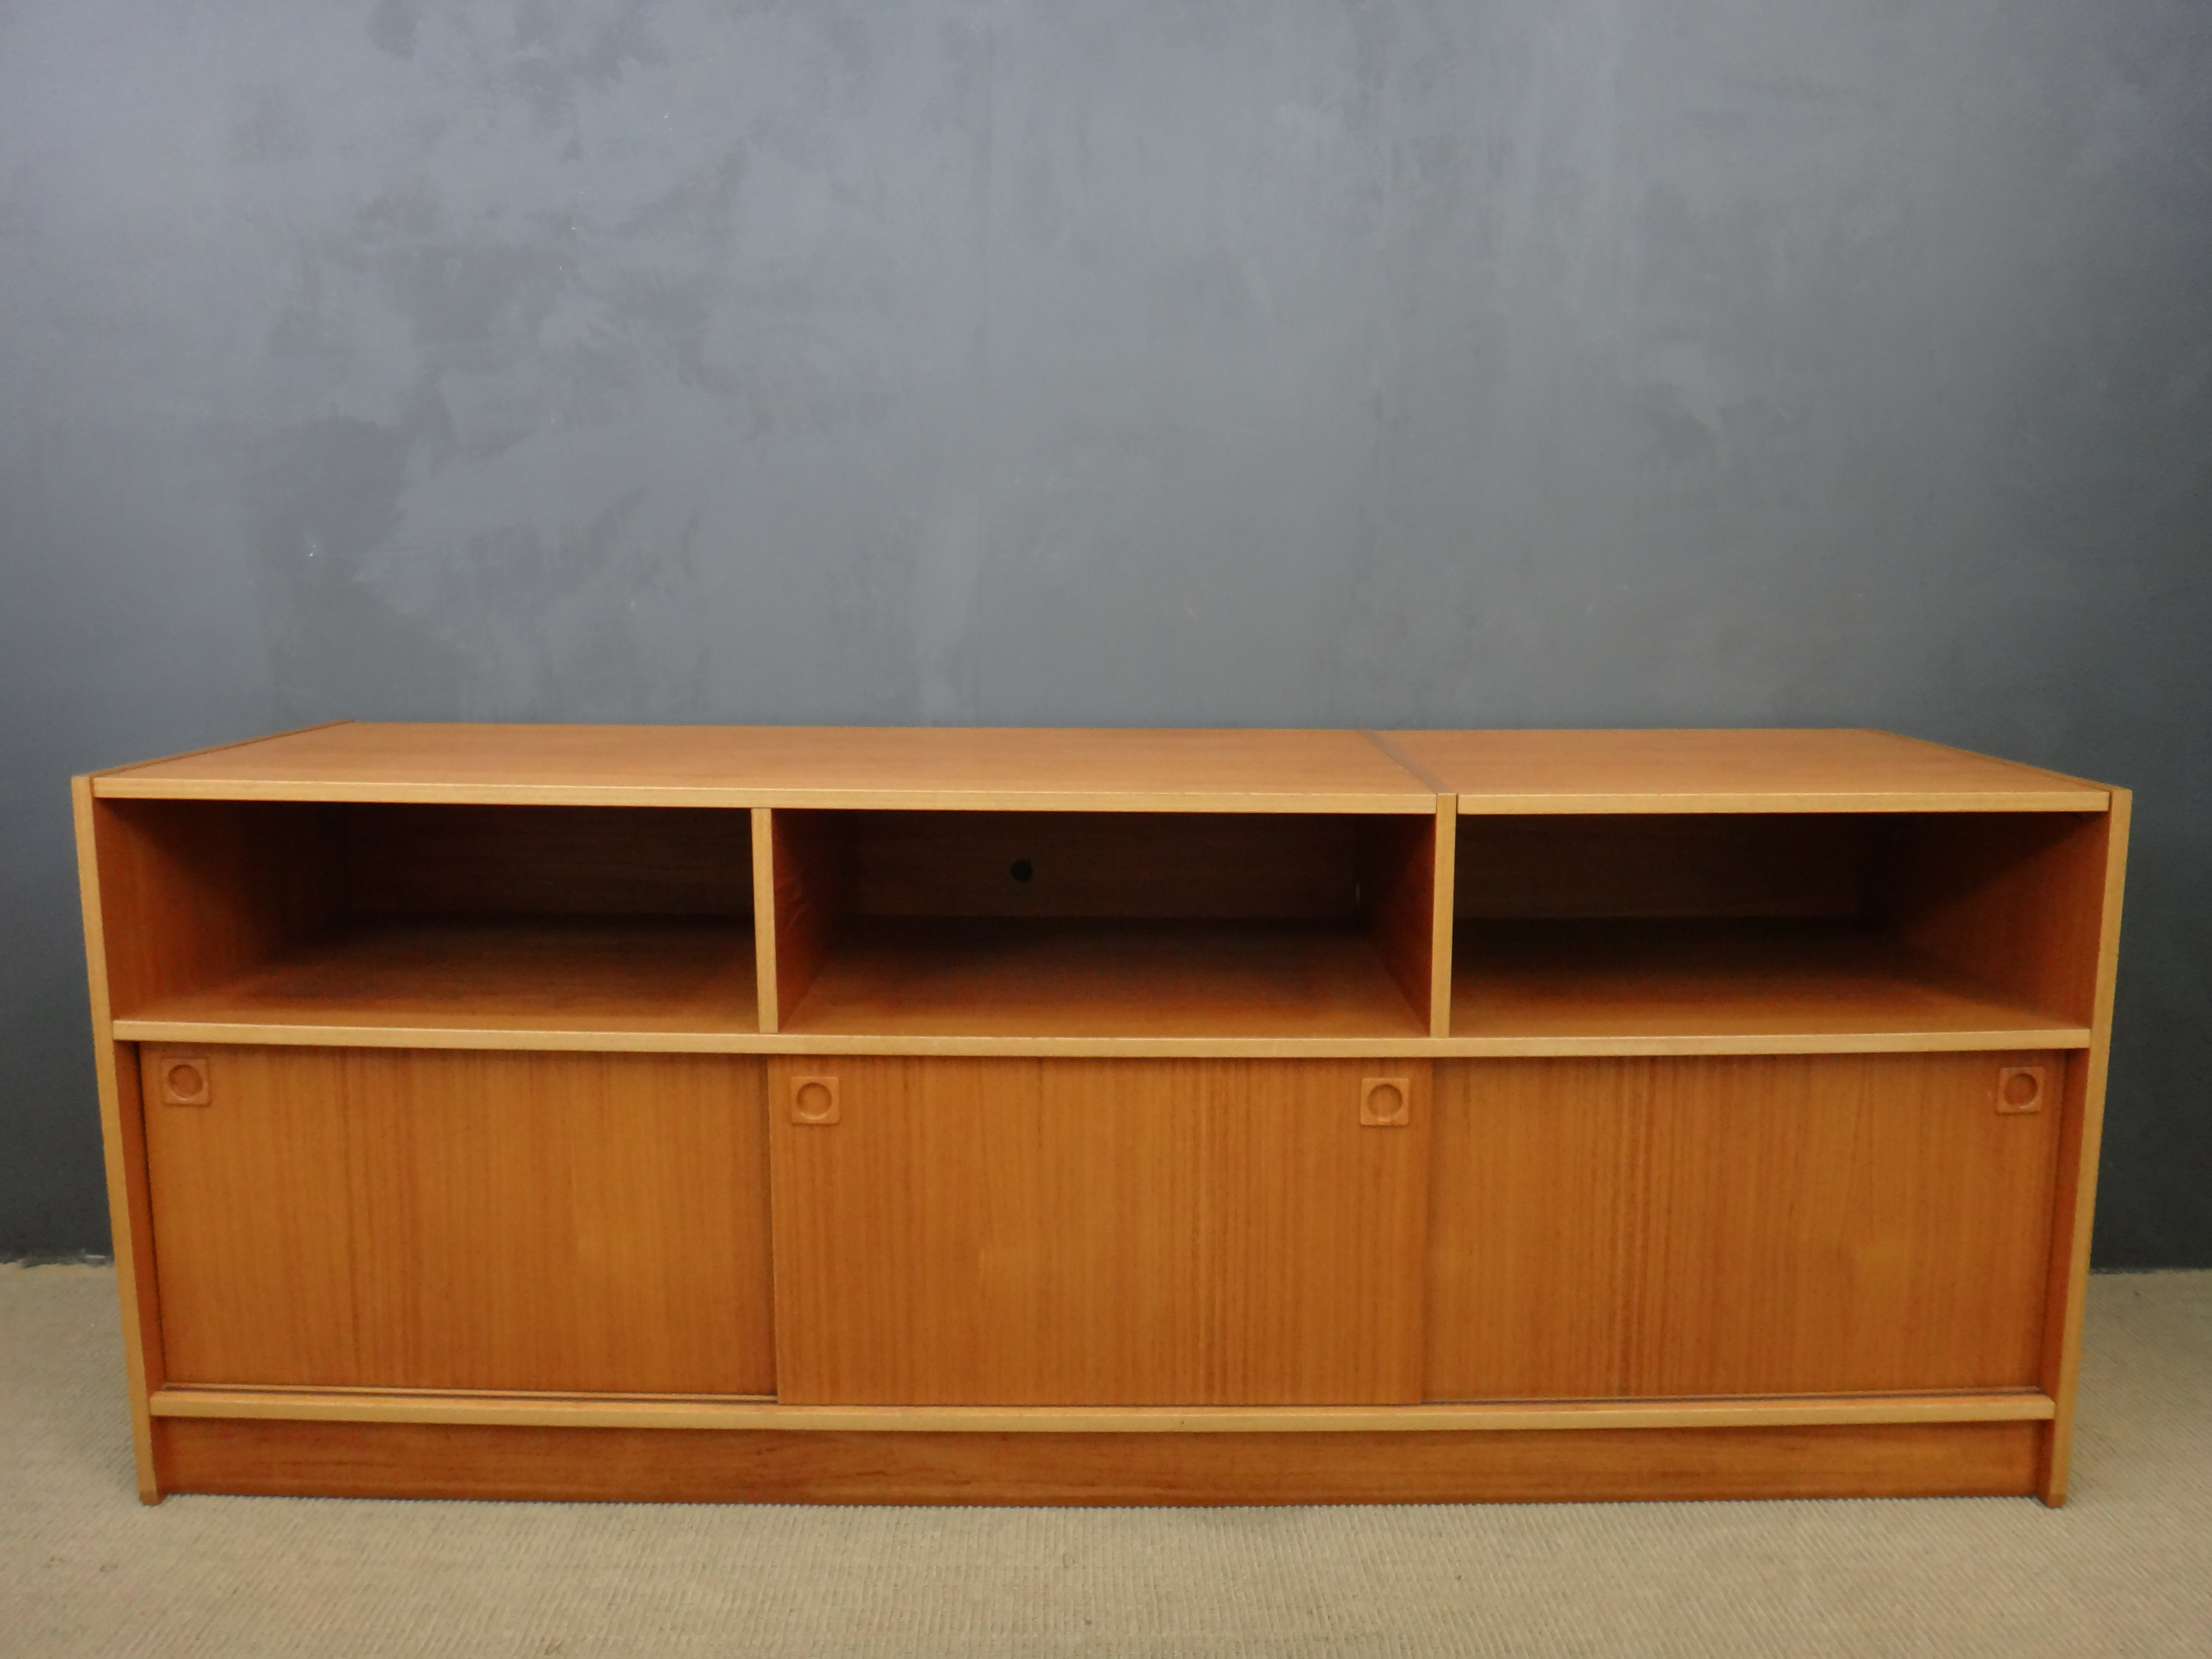 Delicieux Danish Modern Stereo Cabinet Danish Modern Stereo Cabinet ...